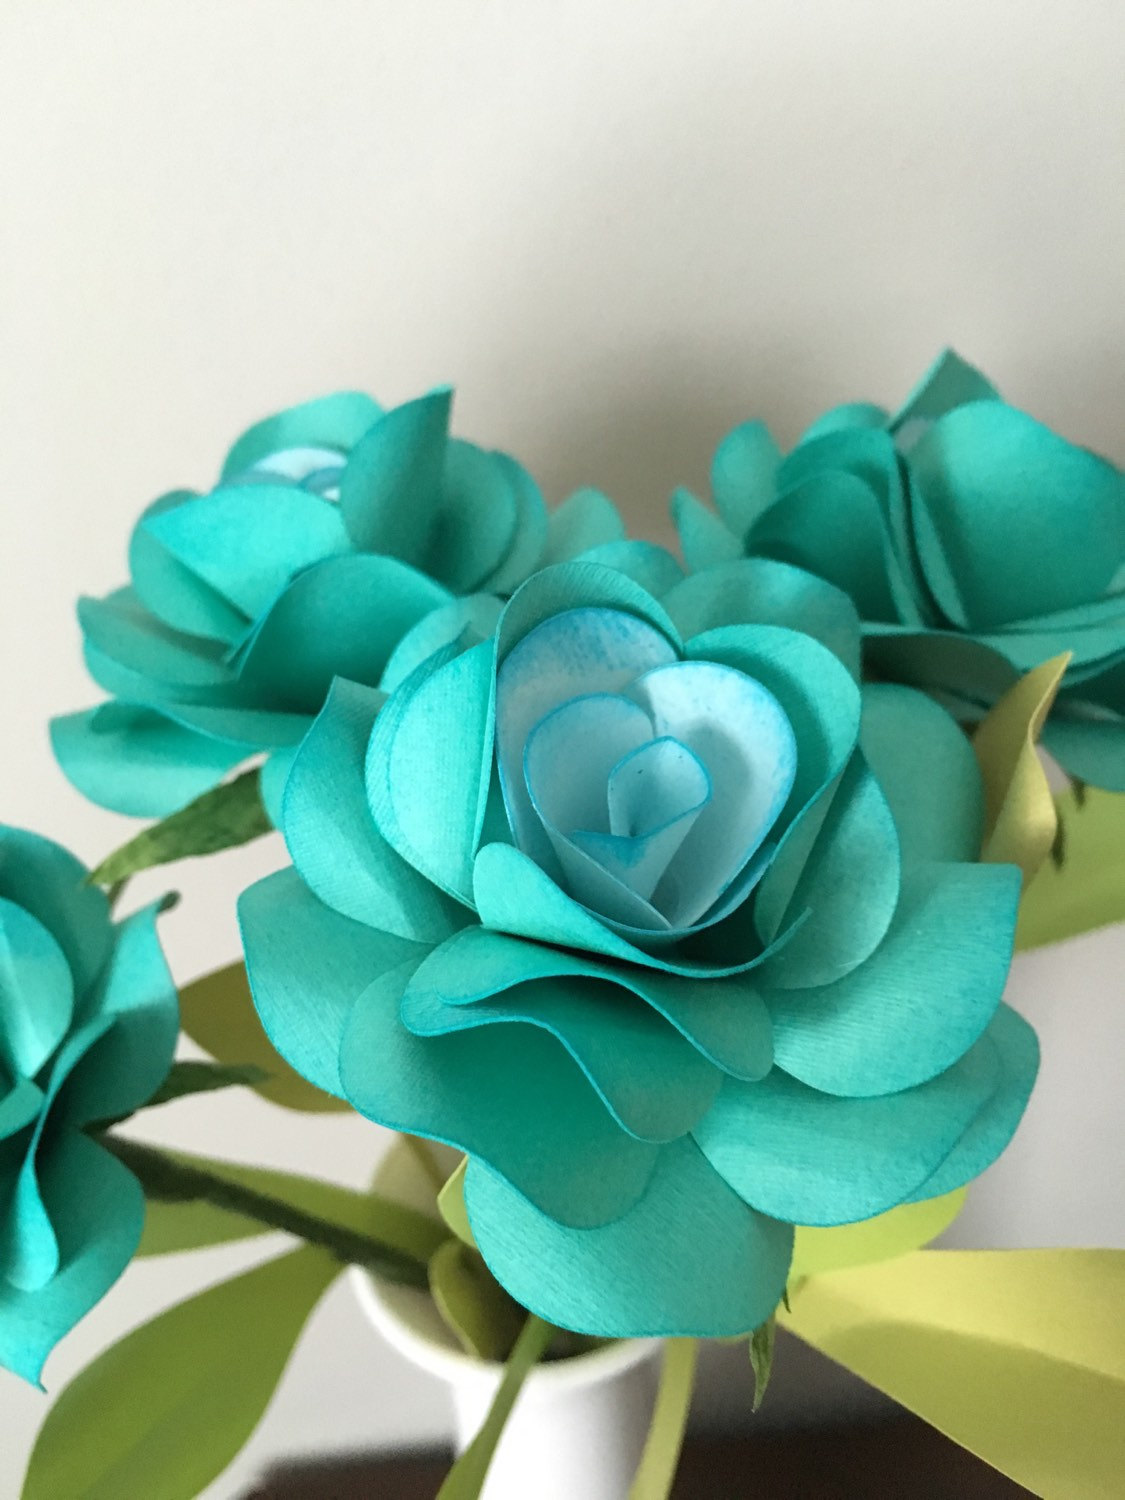 paper flower bouquets for weddings, backdrops, boutonnieres, paper flower decorations | by 2clvrdesigns on Etsy